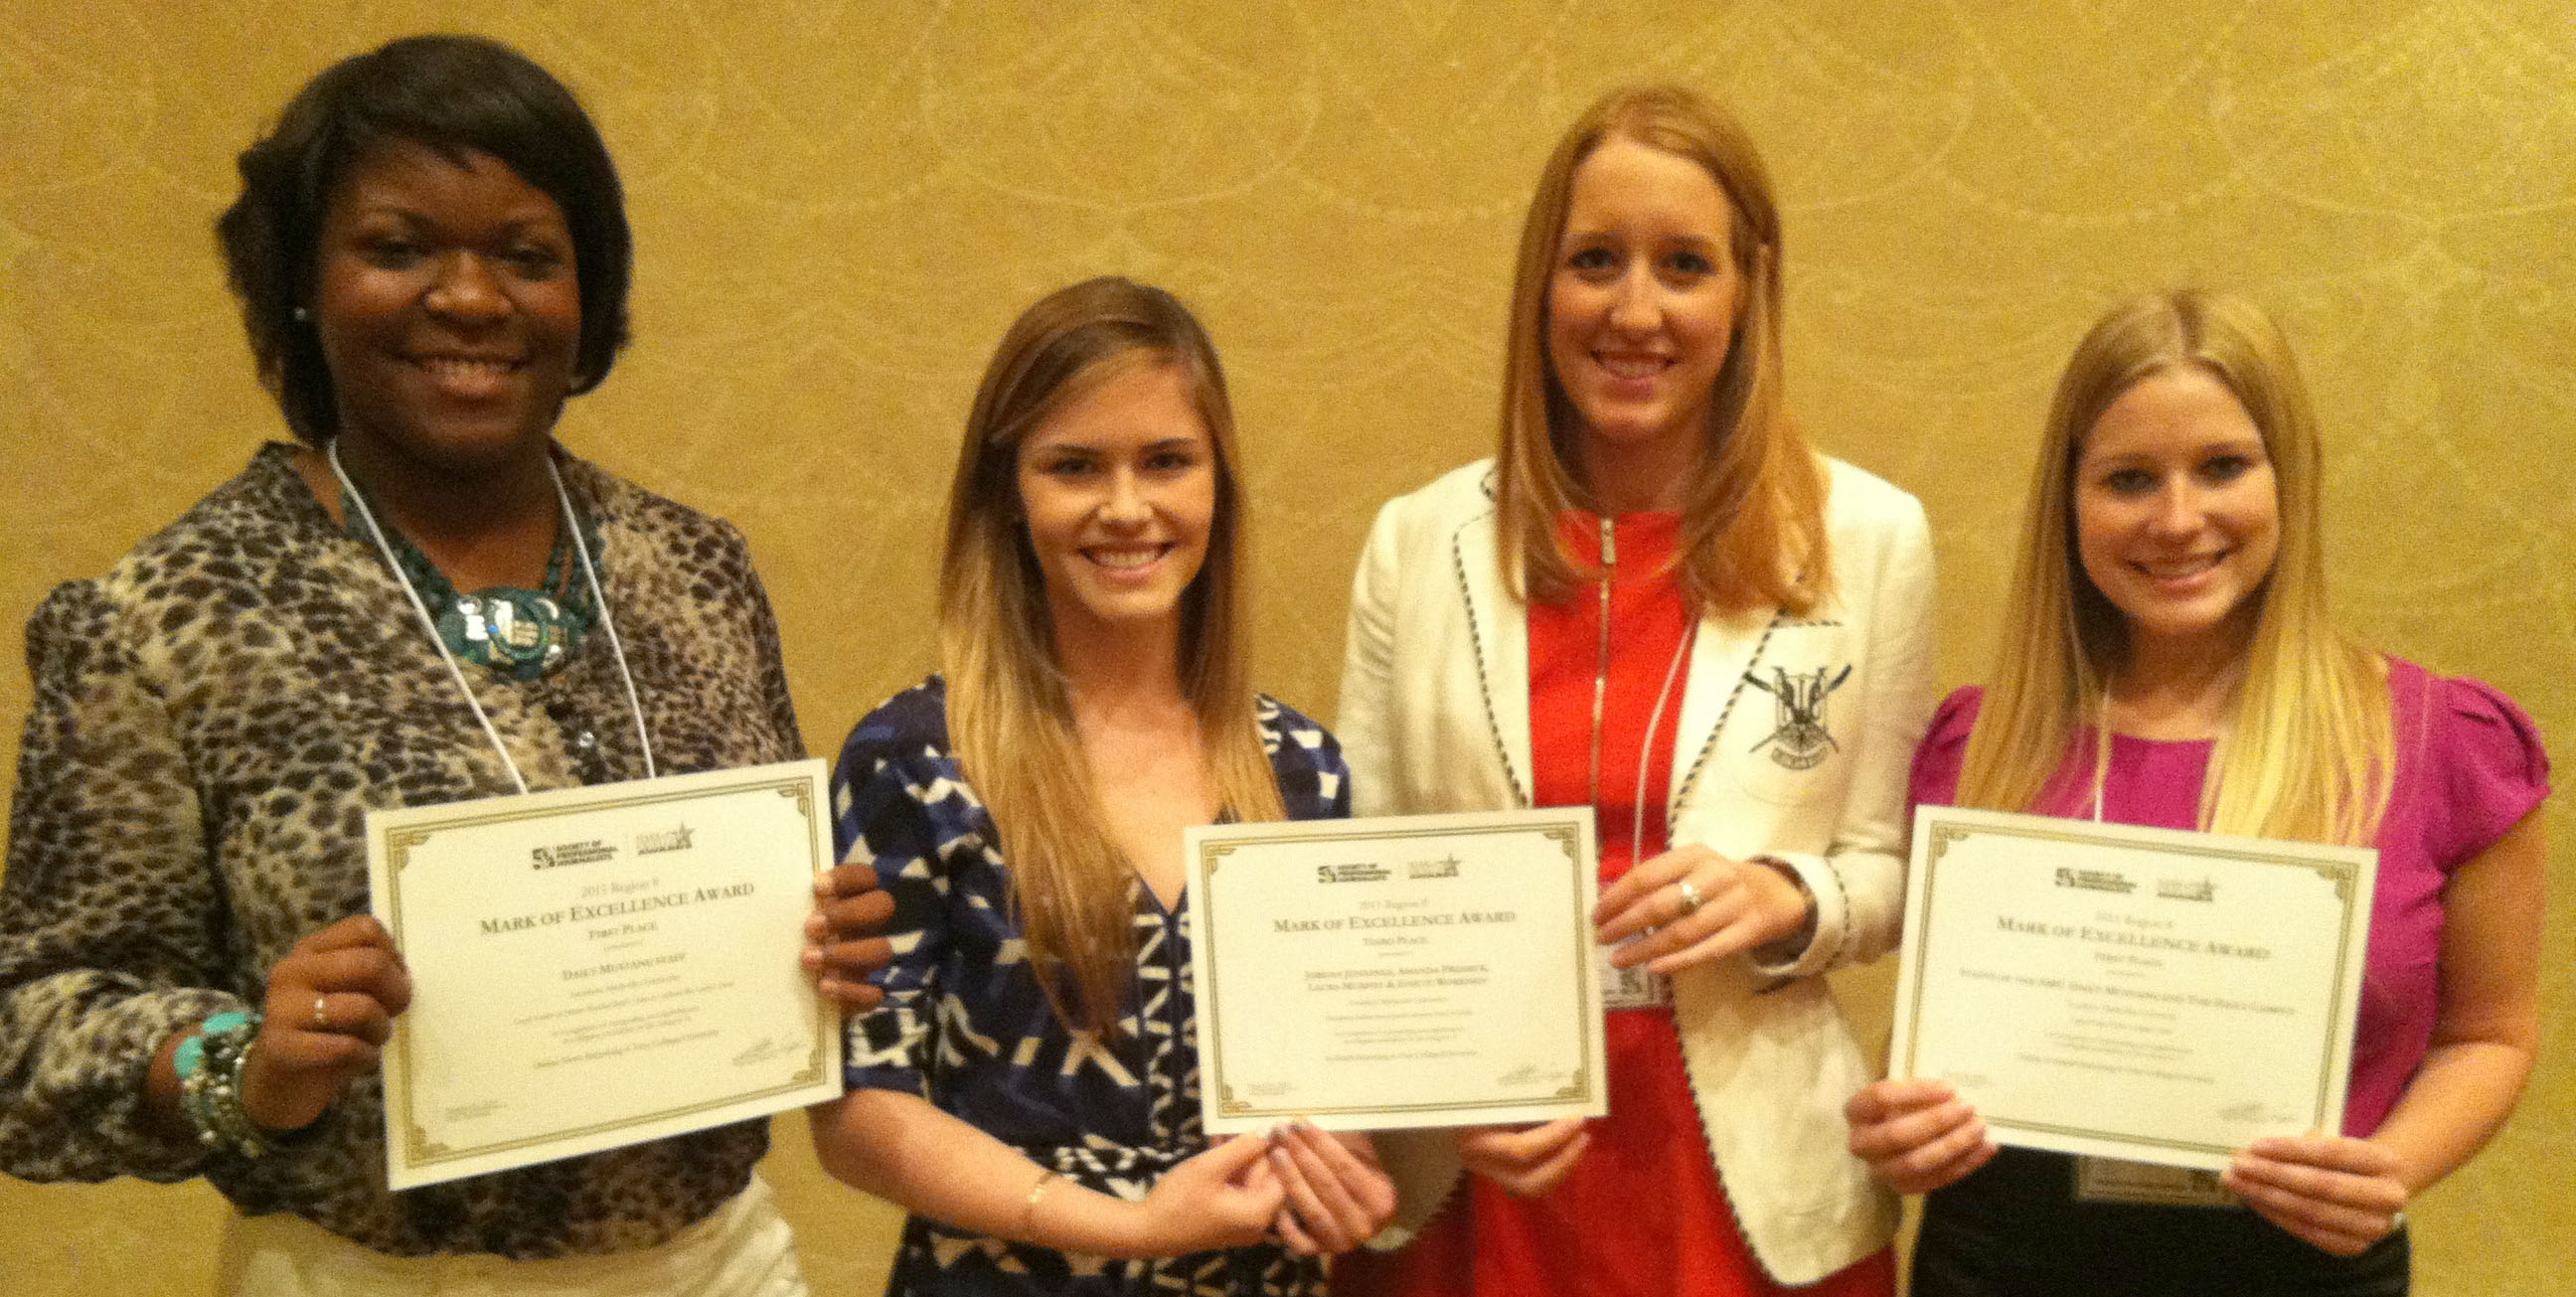 "E'Lyn Taylor (left) accepts the Daily Mustang's 1st place award for Online News Reporting (""Locals Gather at Former President Bush's Home to Celebrate Bin Laden's Death""); Laura Murphy and Jordan Jennings (center) accept 3rd place for In-Depth Reporting (""Discrepancy Between Levels of Public Education Visible in Dallas,"" with Amanda Presmyk and Essete Workneh); and Natalie Posgate (right) accepts the joint staff award for the Daily Mustang and Daily Campus, 1st place, Online In-Depth Reporting, for the Light of Day Project: Campus Crime."